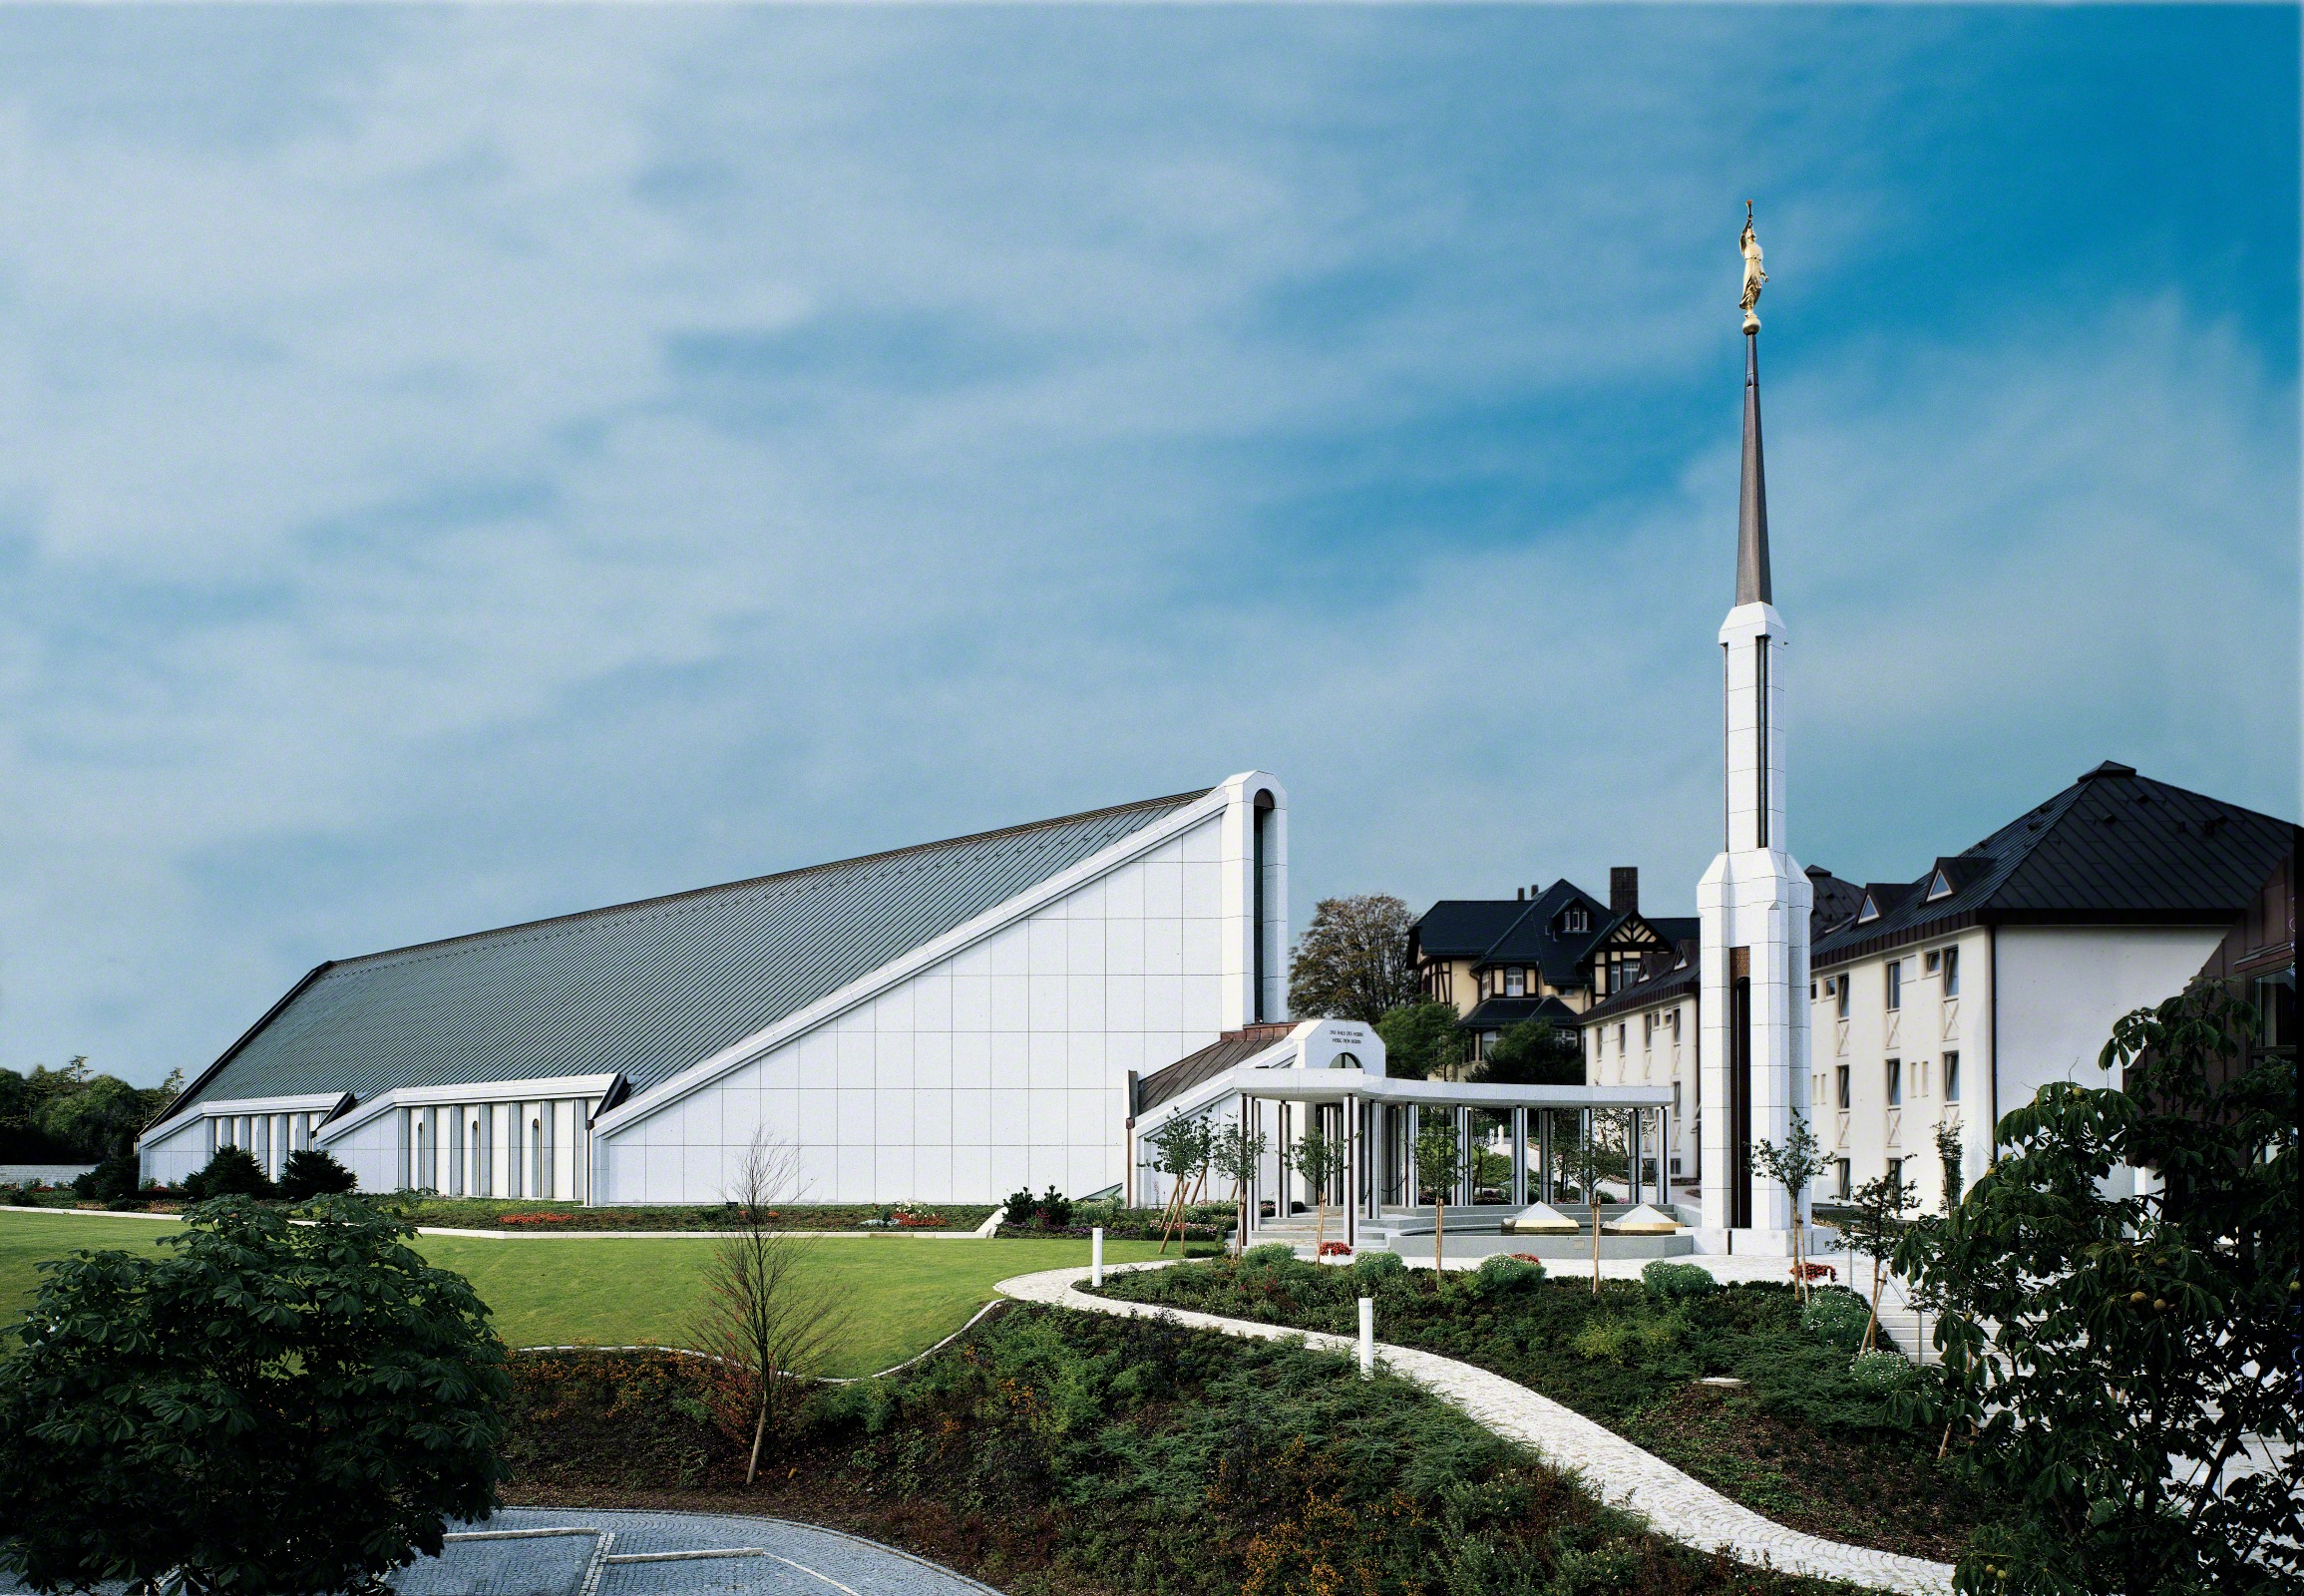 The Frankfurt Germany Temple was dedicated in 1987 and is currently closed for renovation.